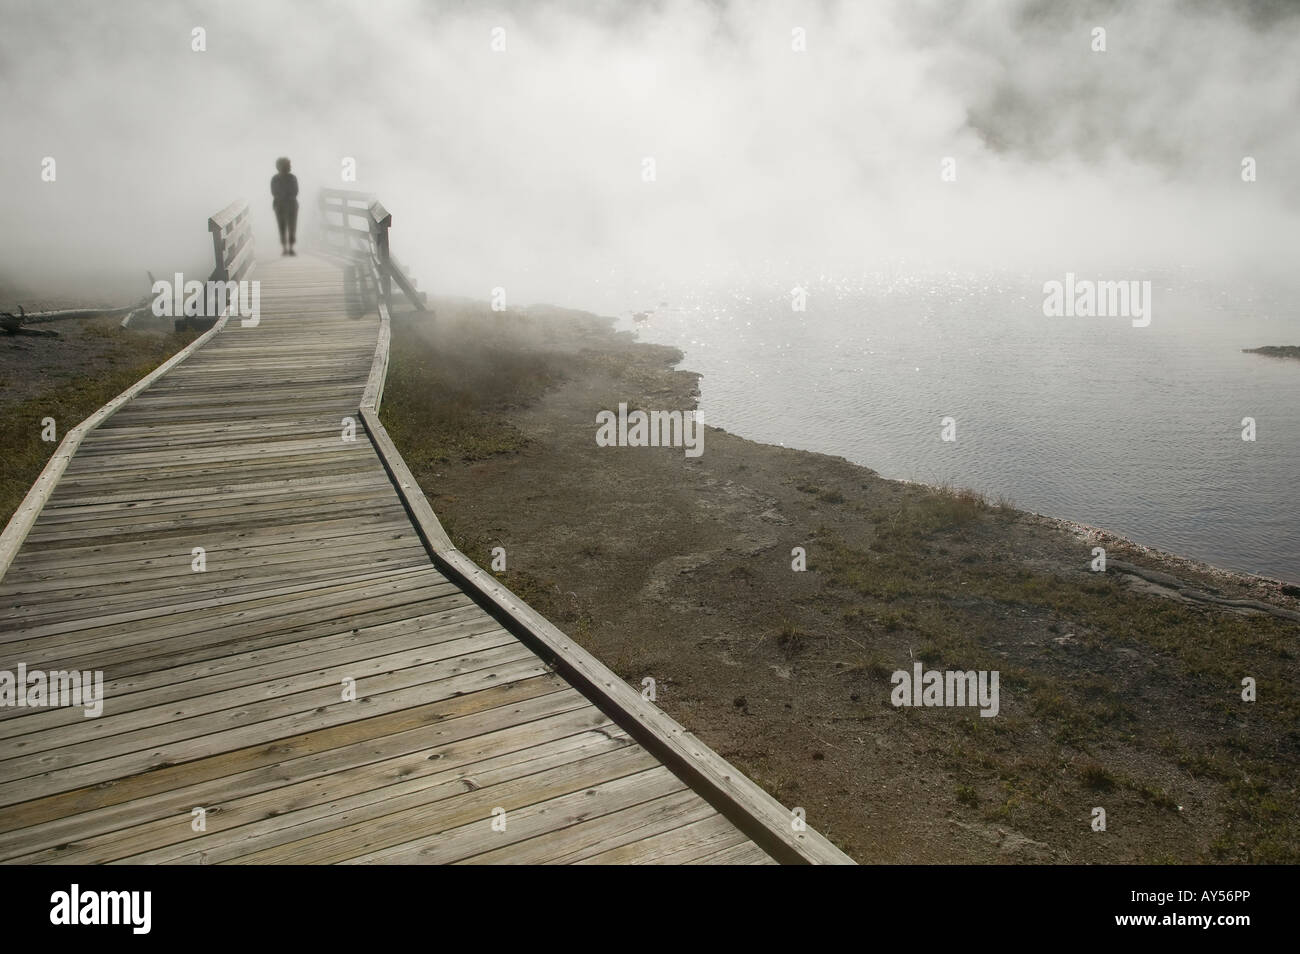 smoke or fog surrounds someone strolling down a sidewalk - Stock Image